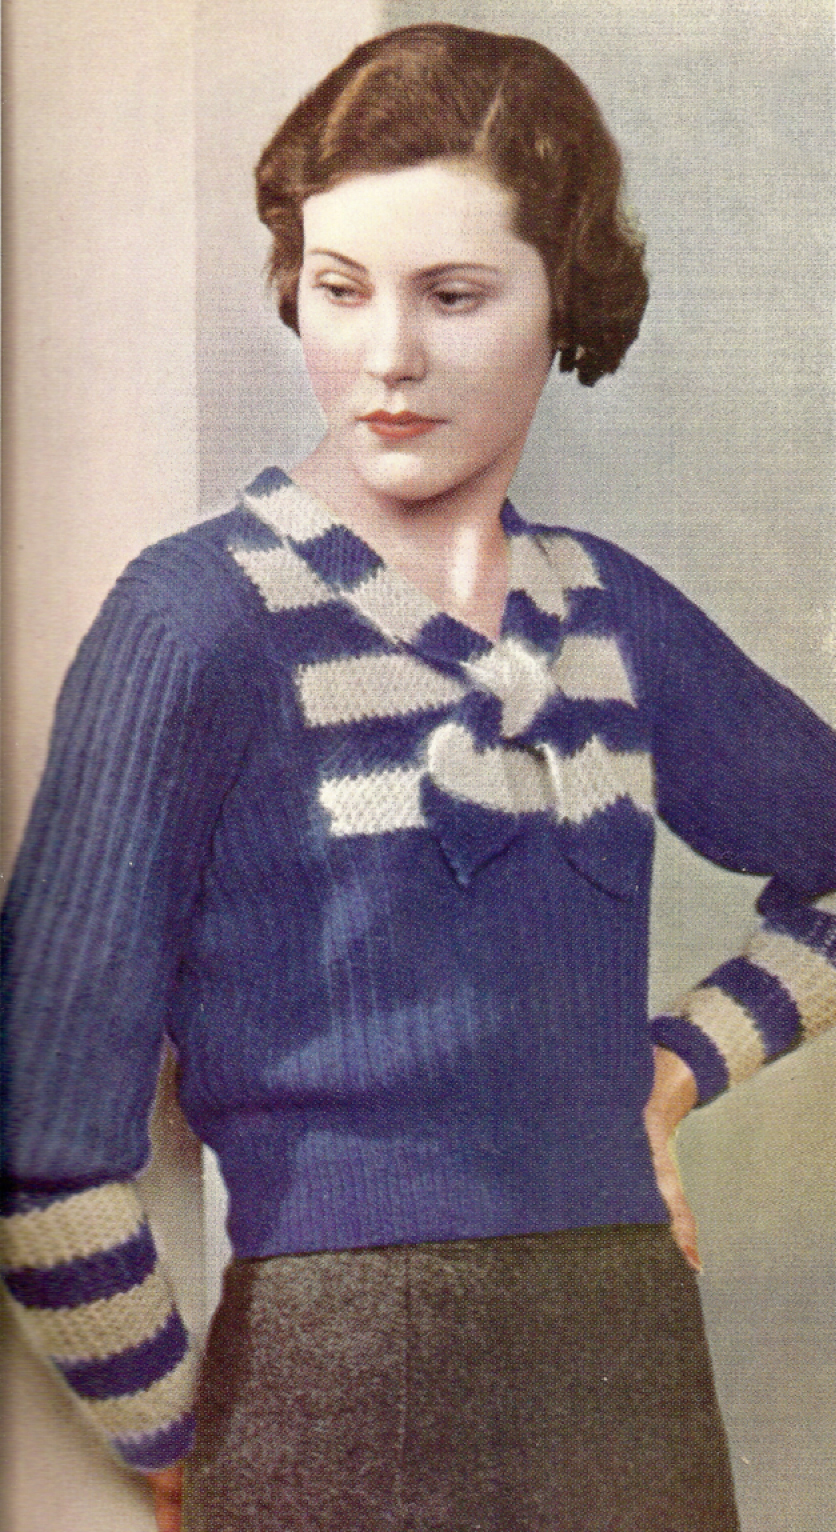 Vintage Knitting Patterns 1920s : The Vintage Pattern Files: 1930s Knitting - The Charm of Blue & Grey